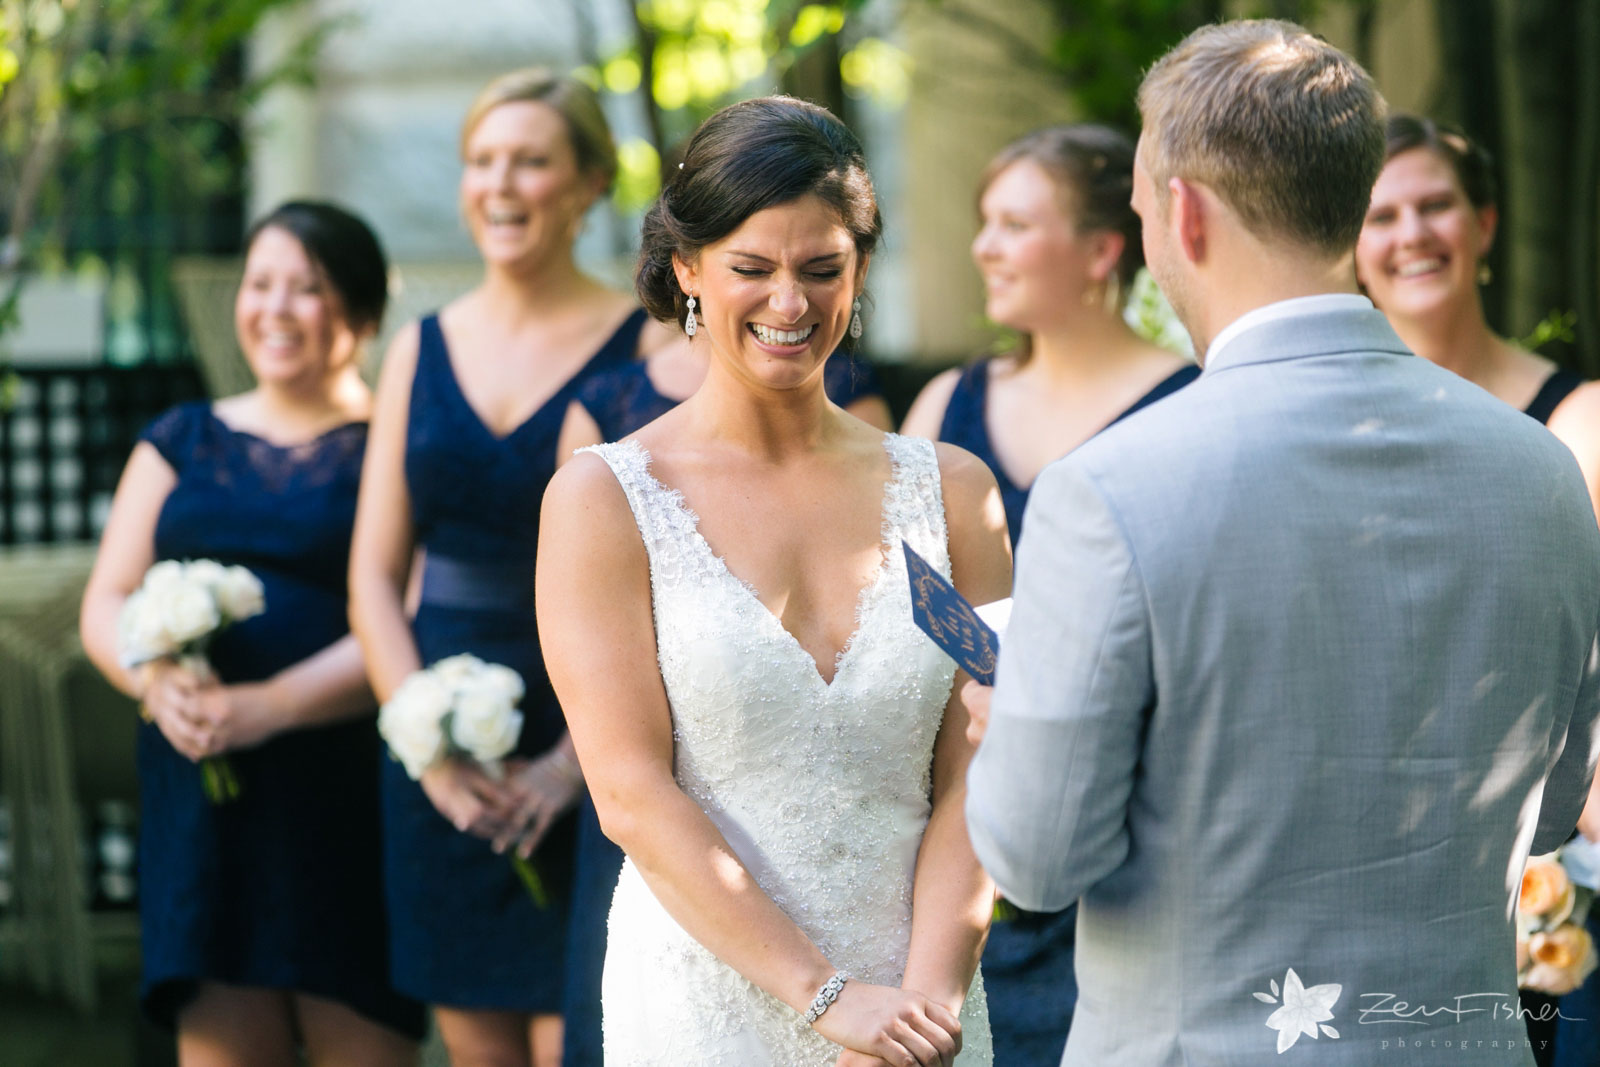 Liberty Hotel Boston wedding, Boston wedding photography, bride's reaction to groom during ceremony